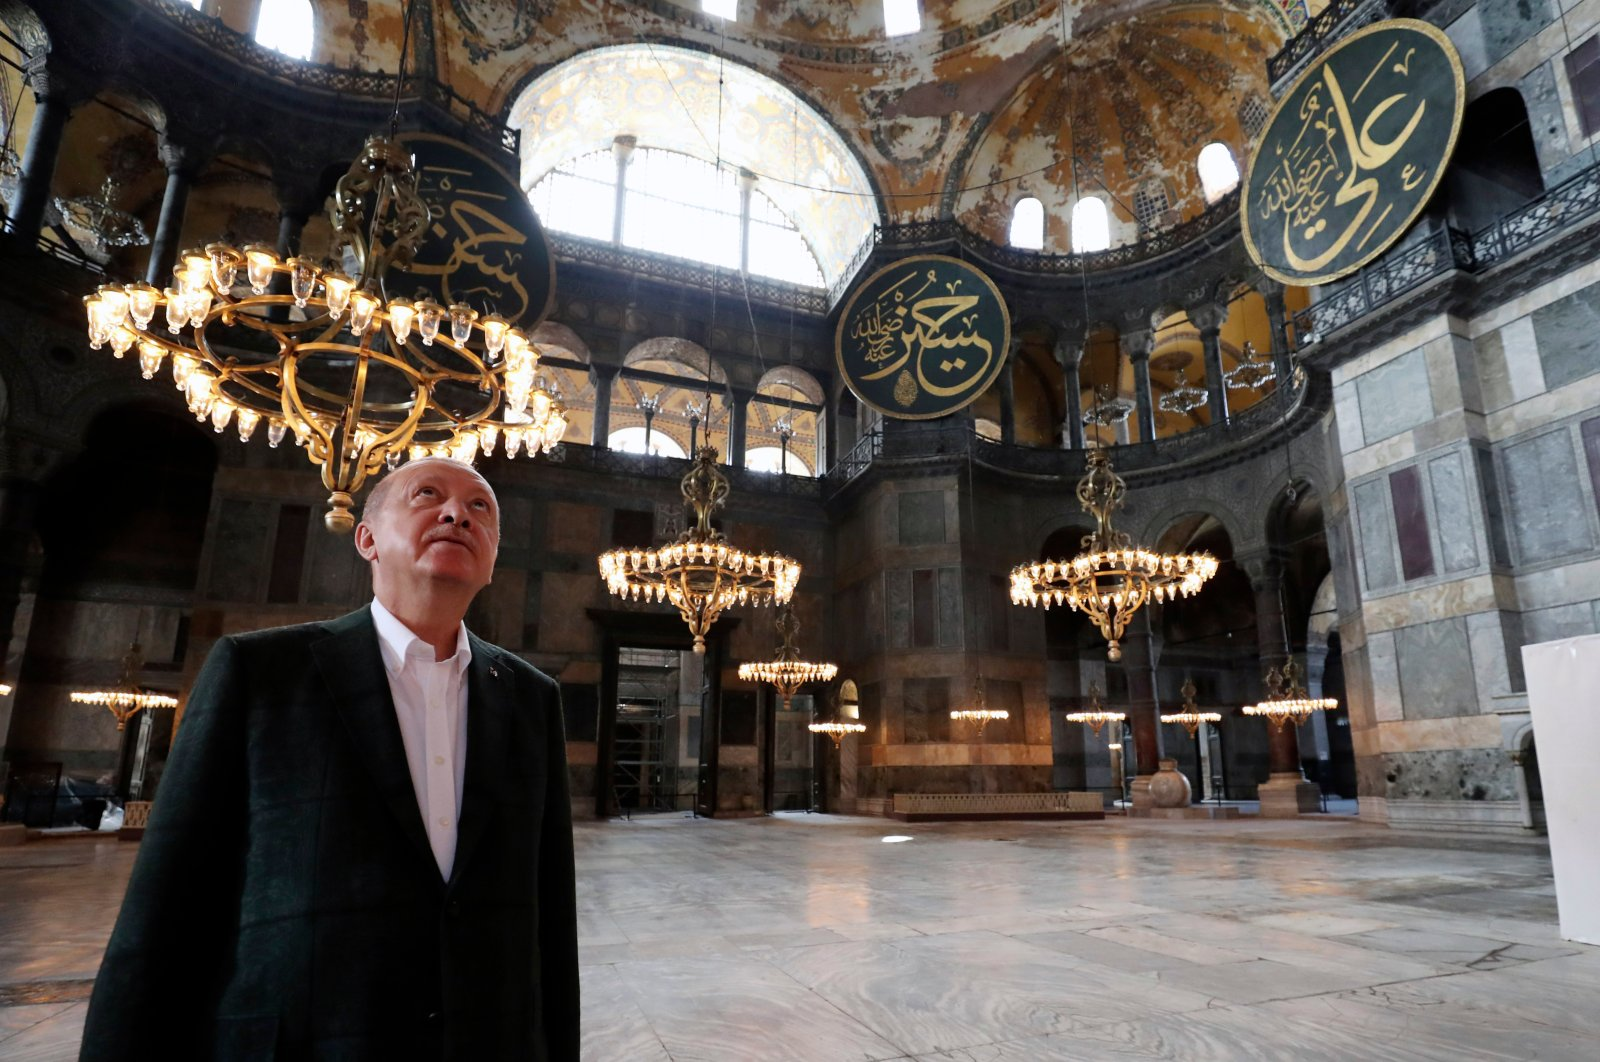 President Recep Tayyip Erdoğan visits the Hagia Sophia, one of Istanbul's main tourist attractions in the historic Sultanahmet district of Istanbul, July 19, 2020. (AP)